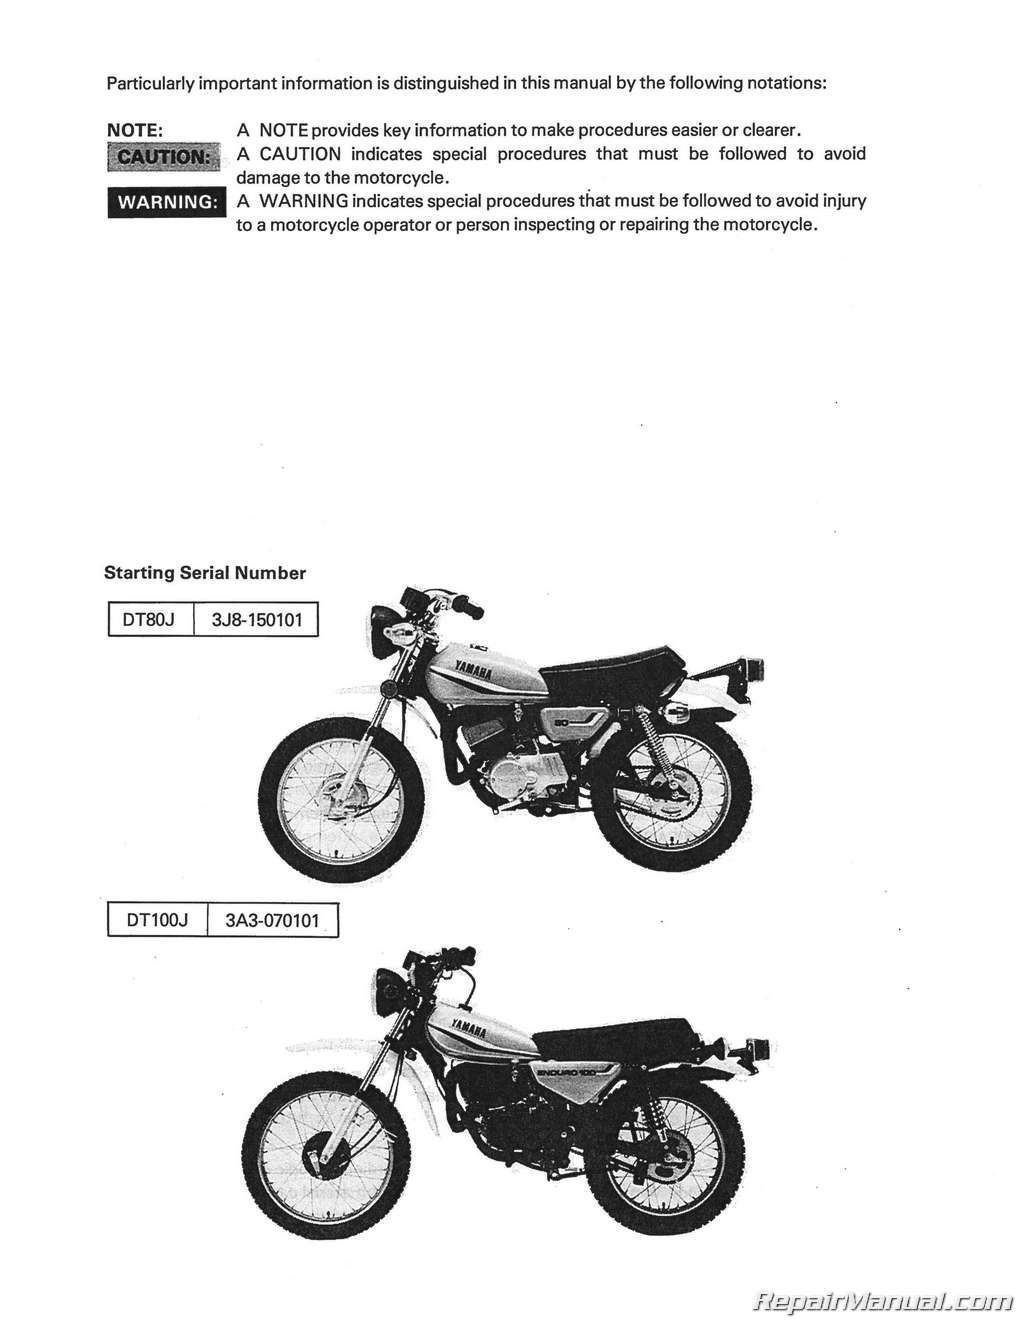 1977 – 1983 Yamaha DT80 GT80 GTMXE DT100 Motorcycle Service Manual